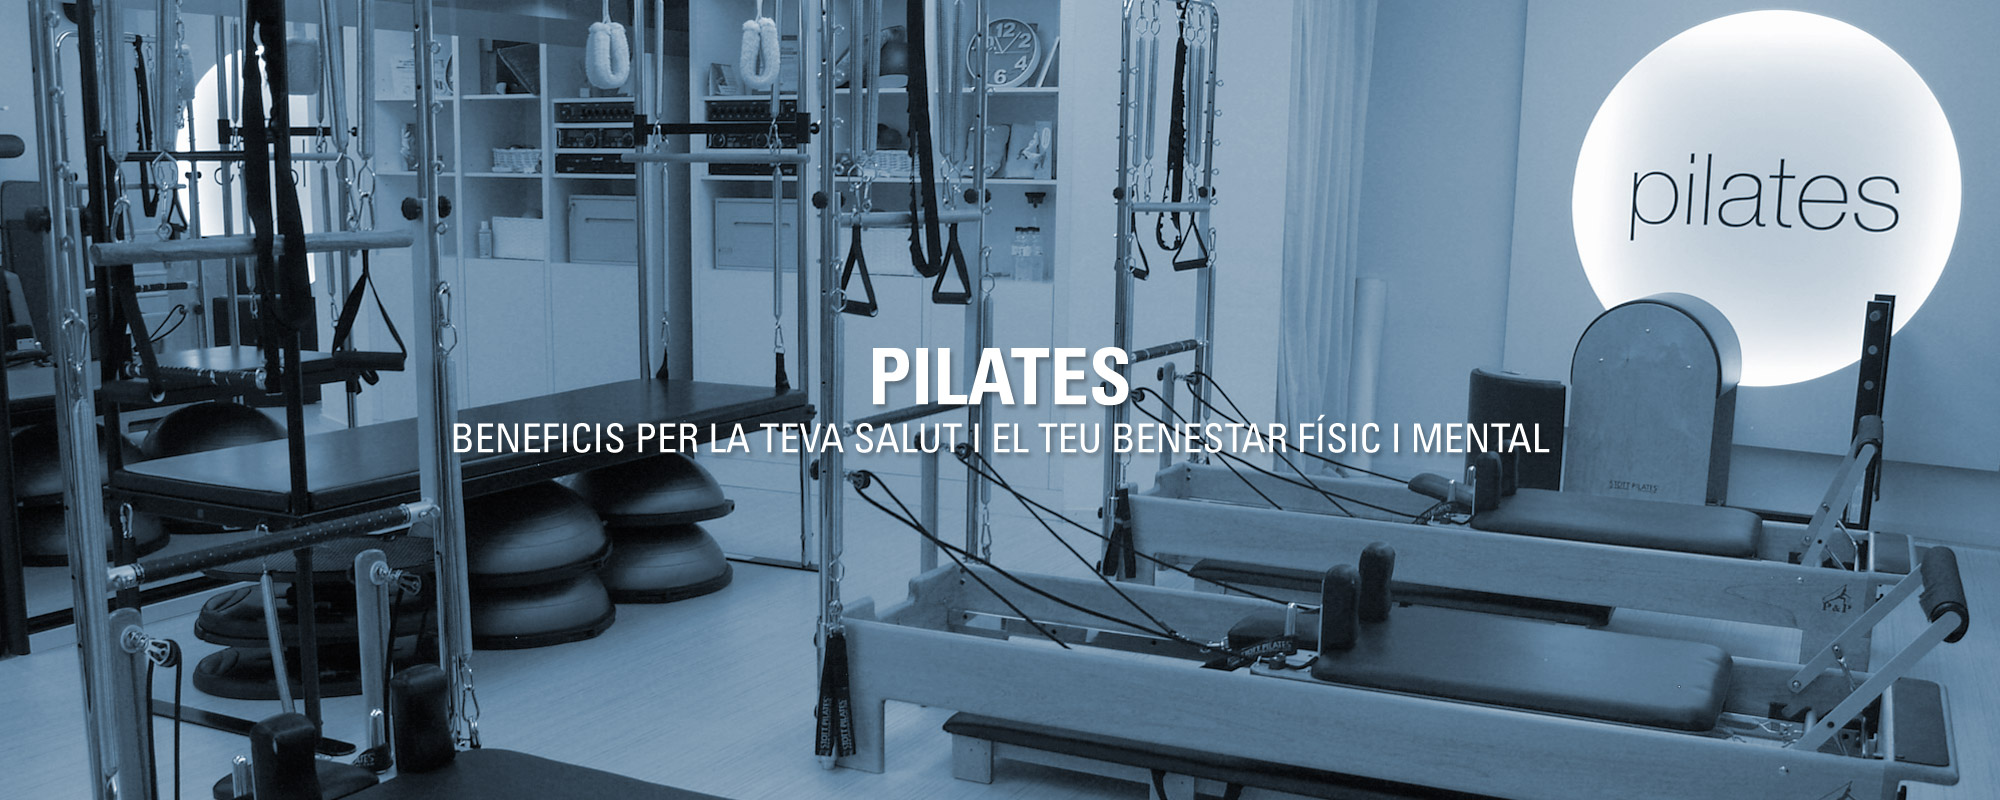 pilates-gimnas-fit-andorra